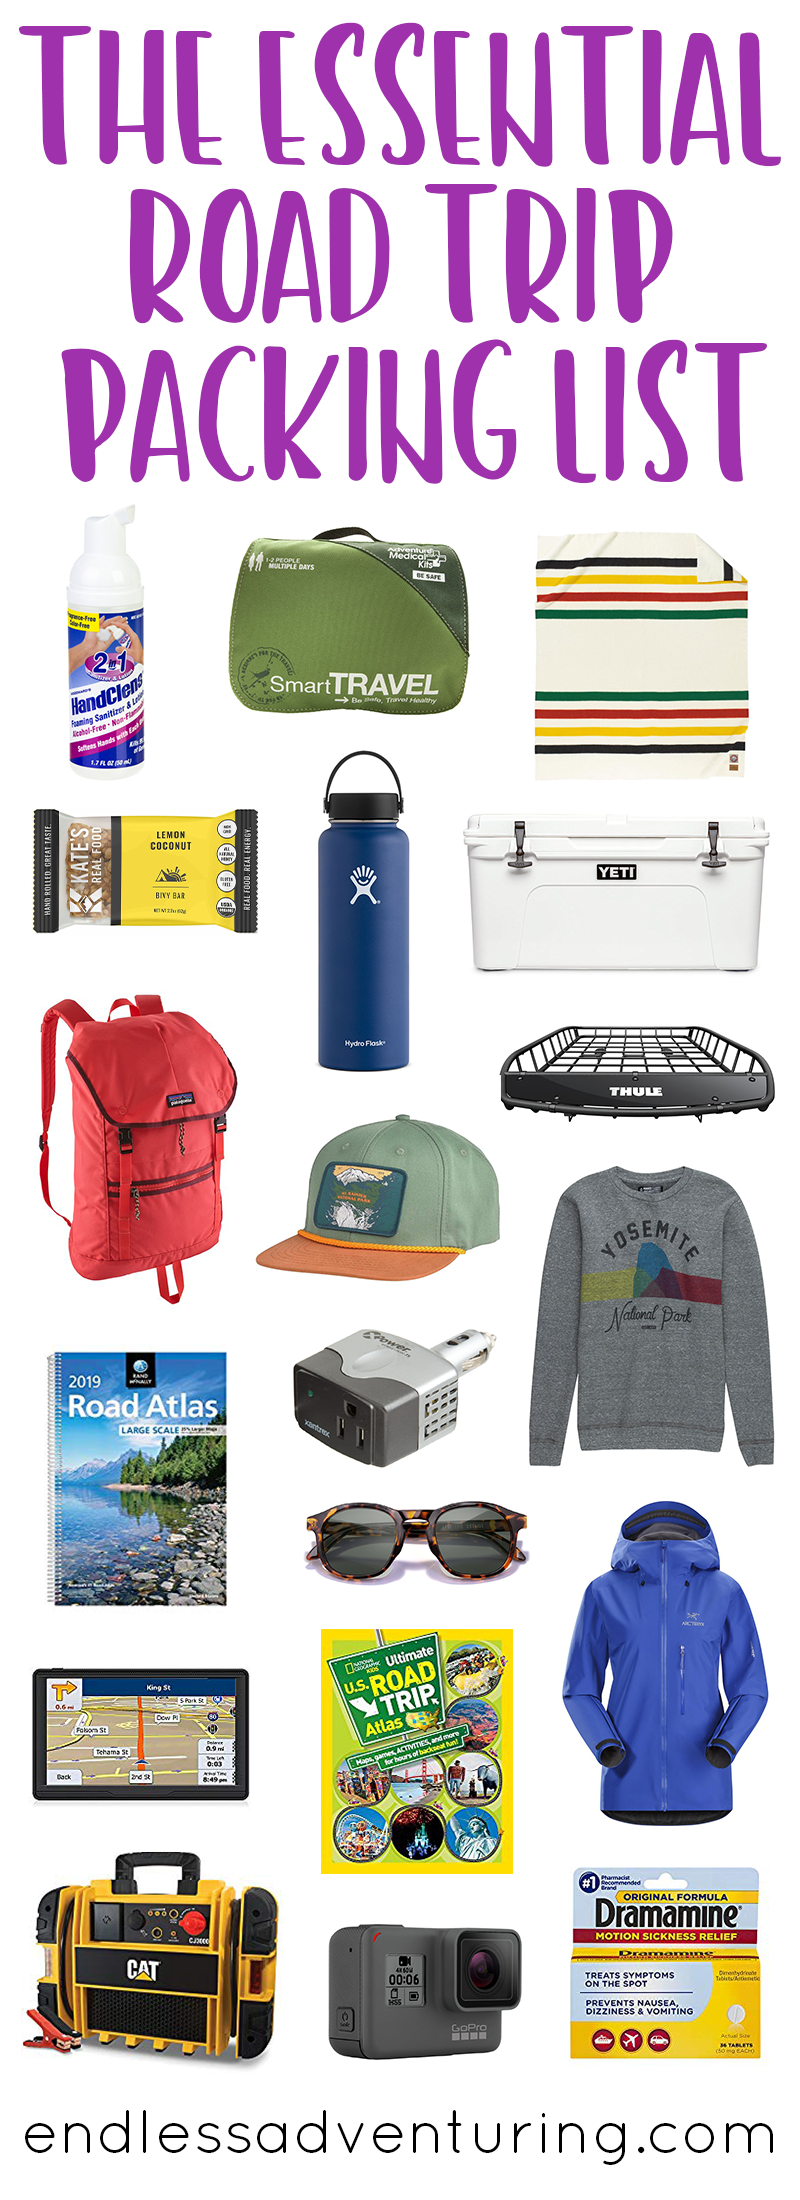 The Essential Road Trip Packing List